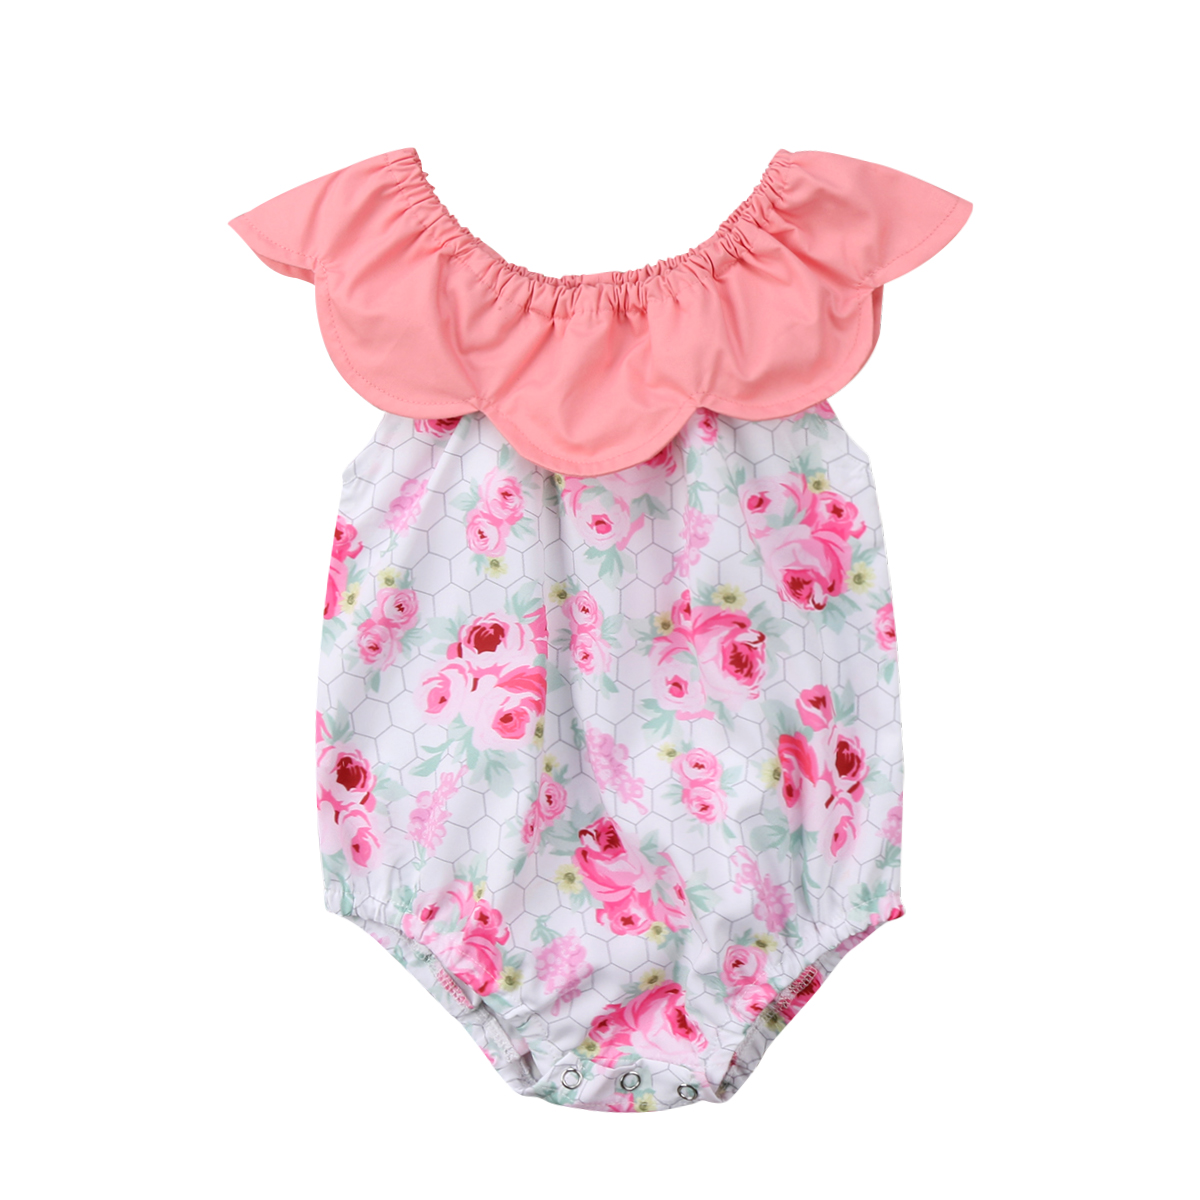 Soft Cotton Newborn Infant Baby Girls Pink Sleeve Floral Romper Jumpsuit Playsuit Outfits Clothes Summer 0-24M